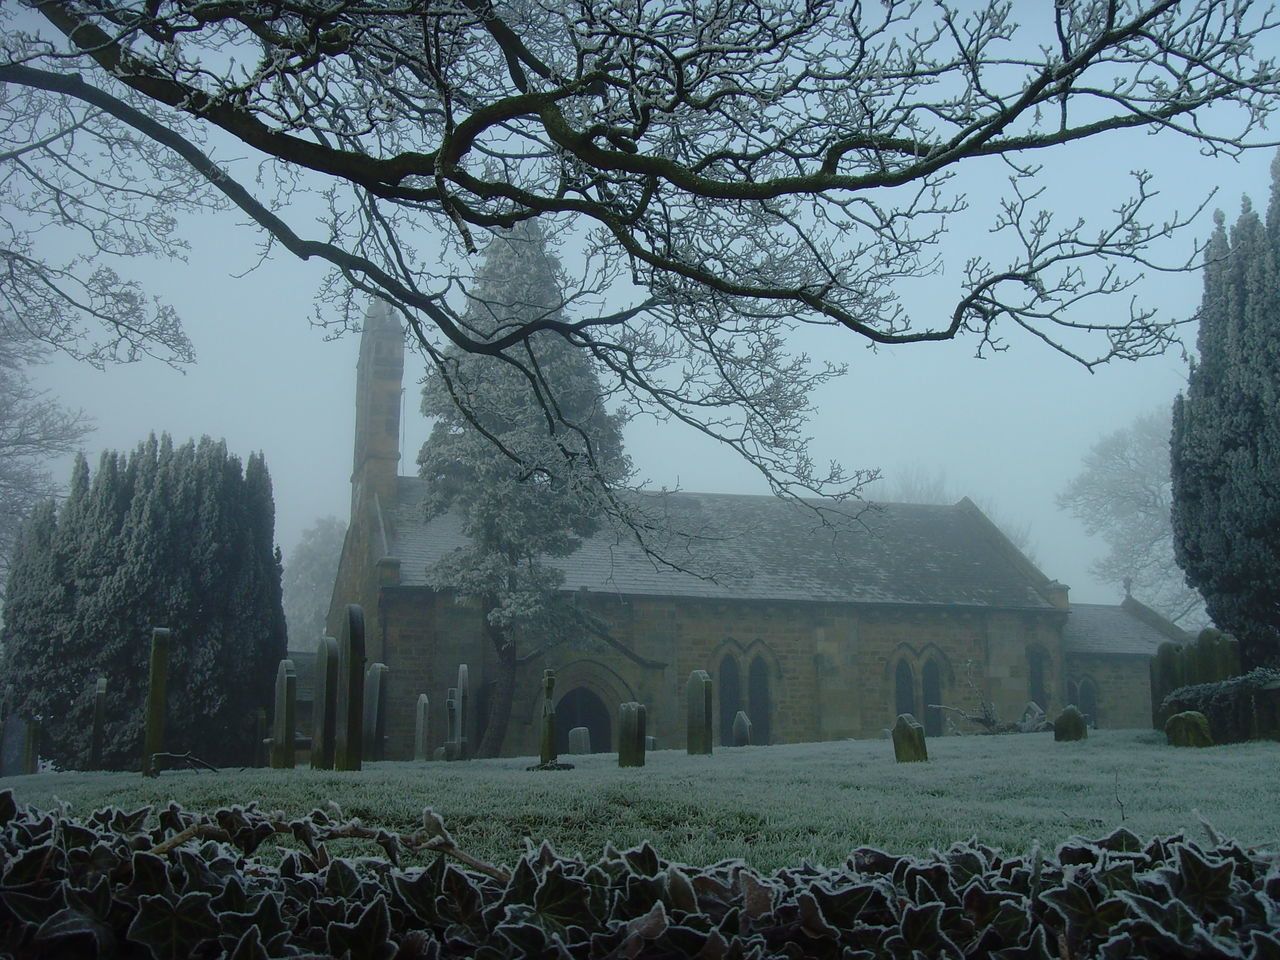 Church And Cemetery Against Sky In Foggy Weather